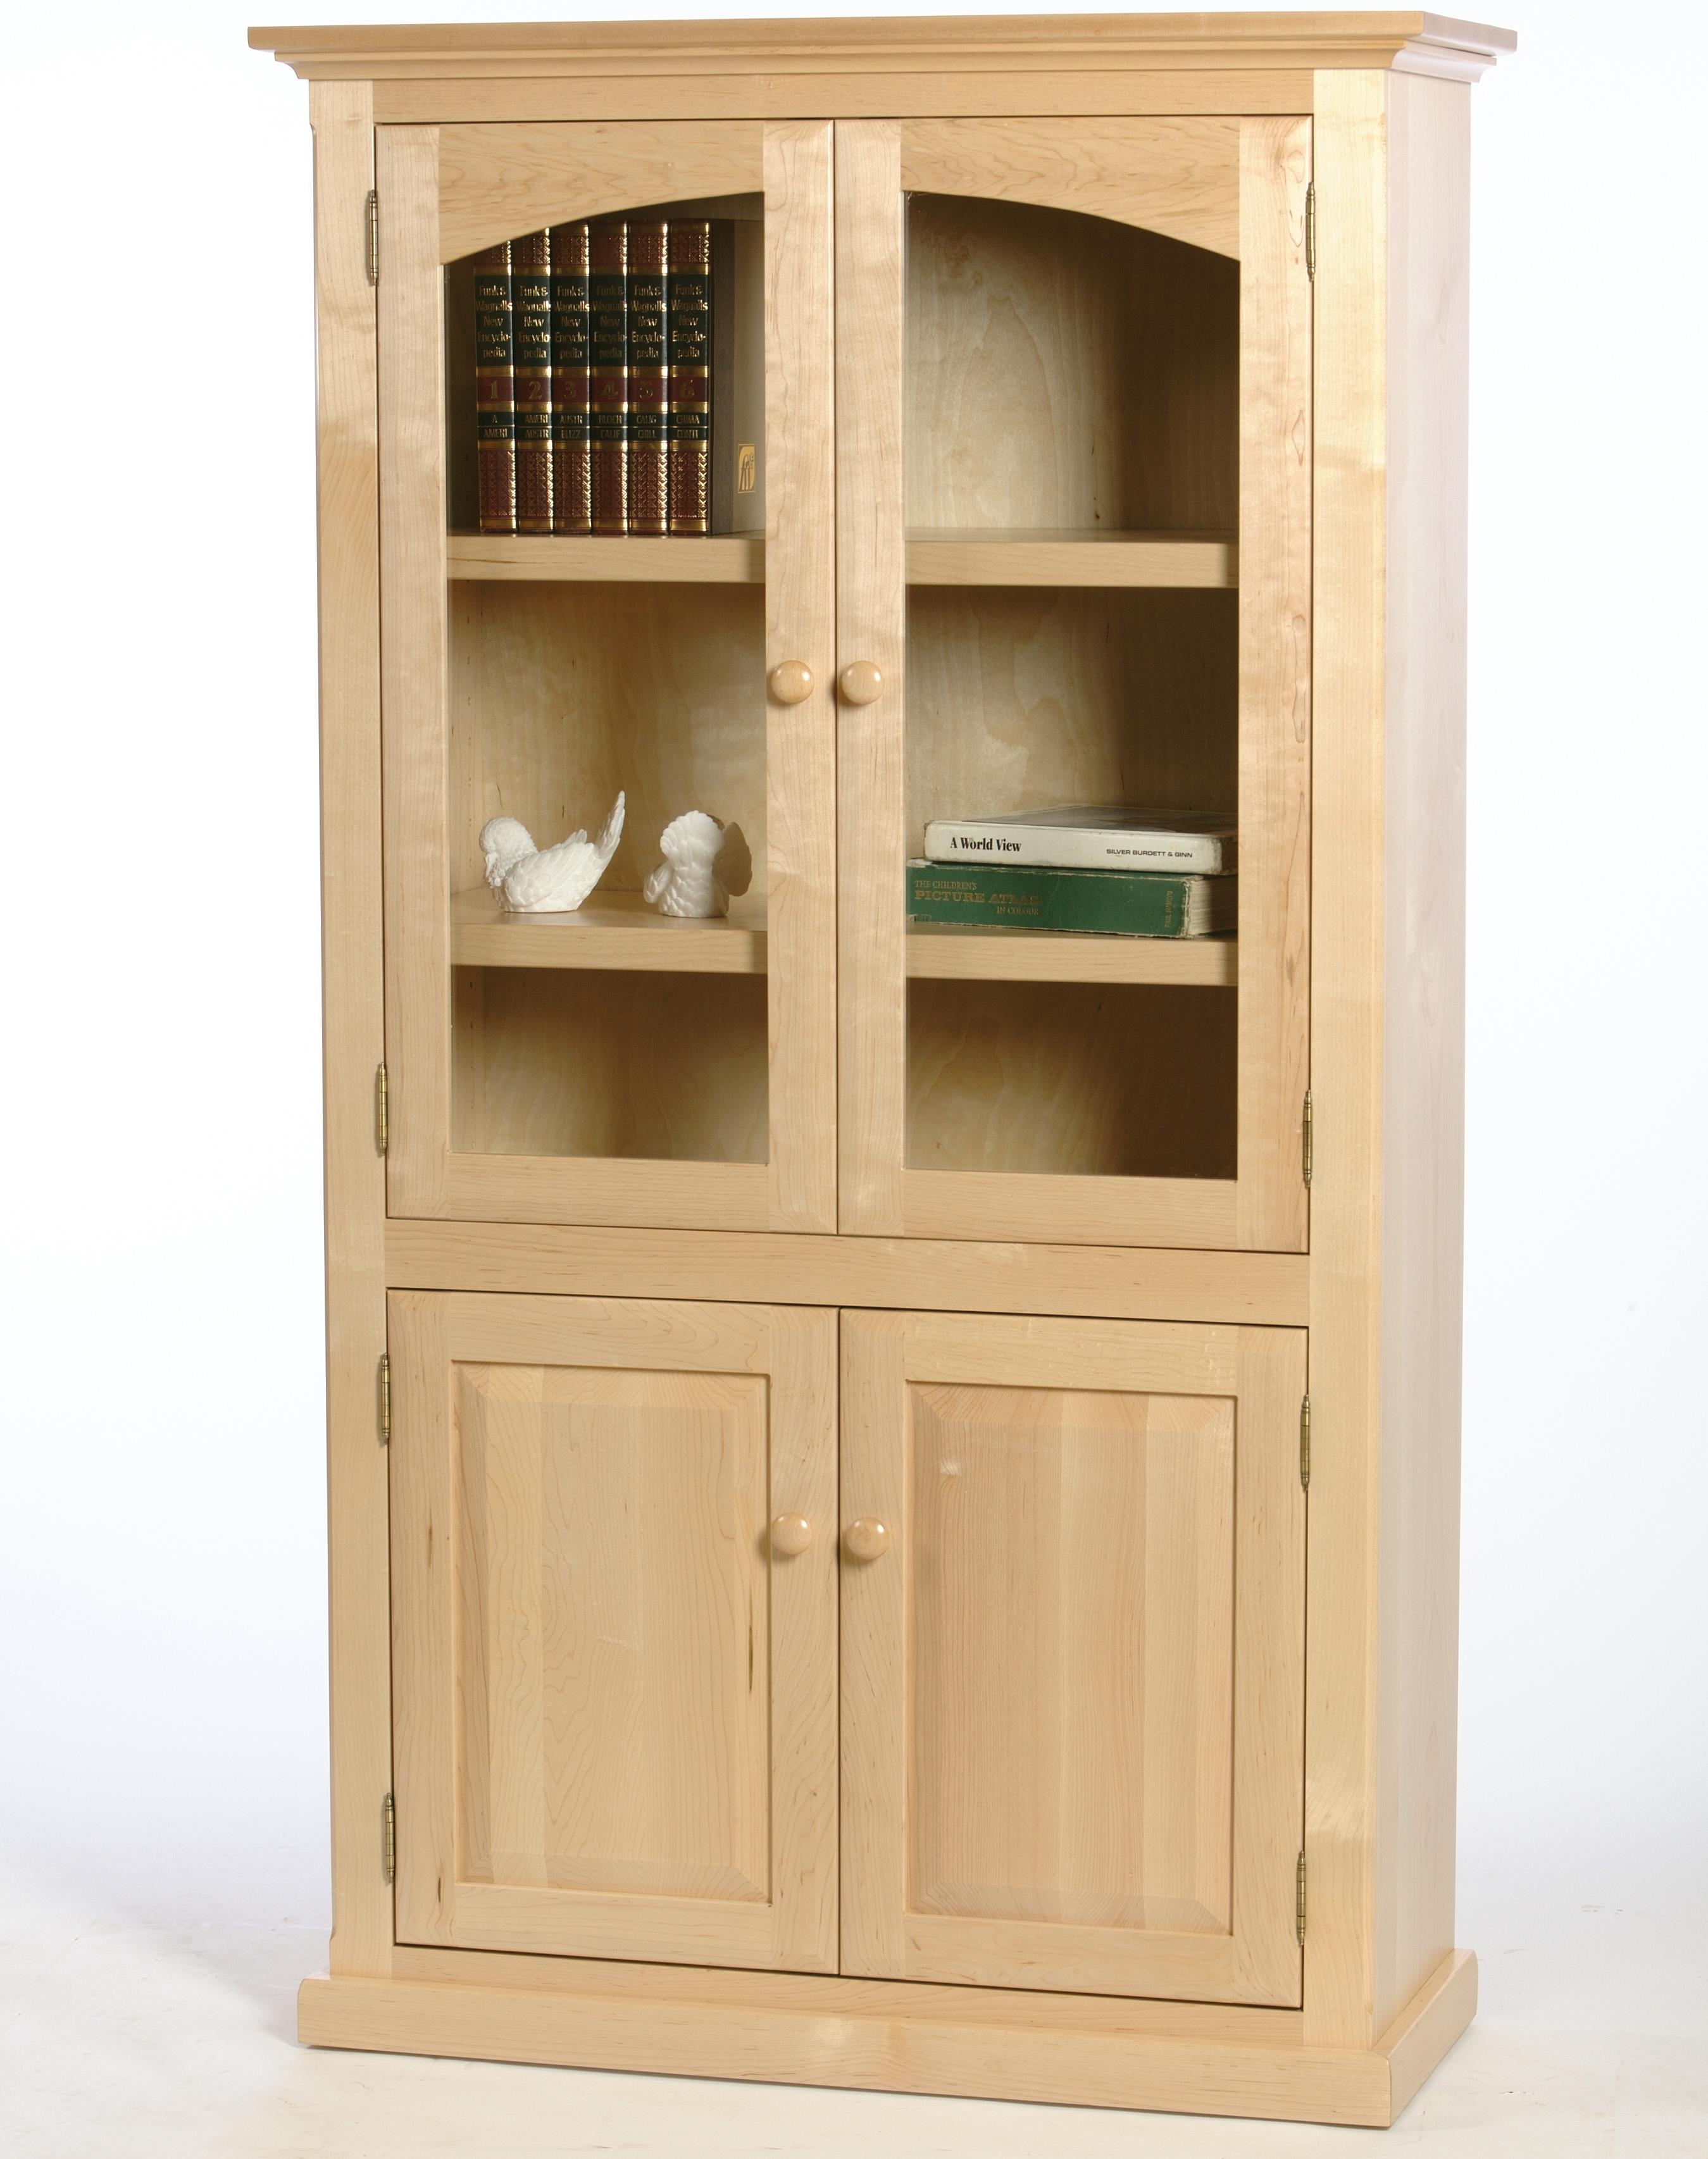 Wonder Wood Bookcases Customizable Salem Bookcase by Wonder Wood at Saugerties Furniture Mart